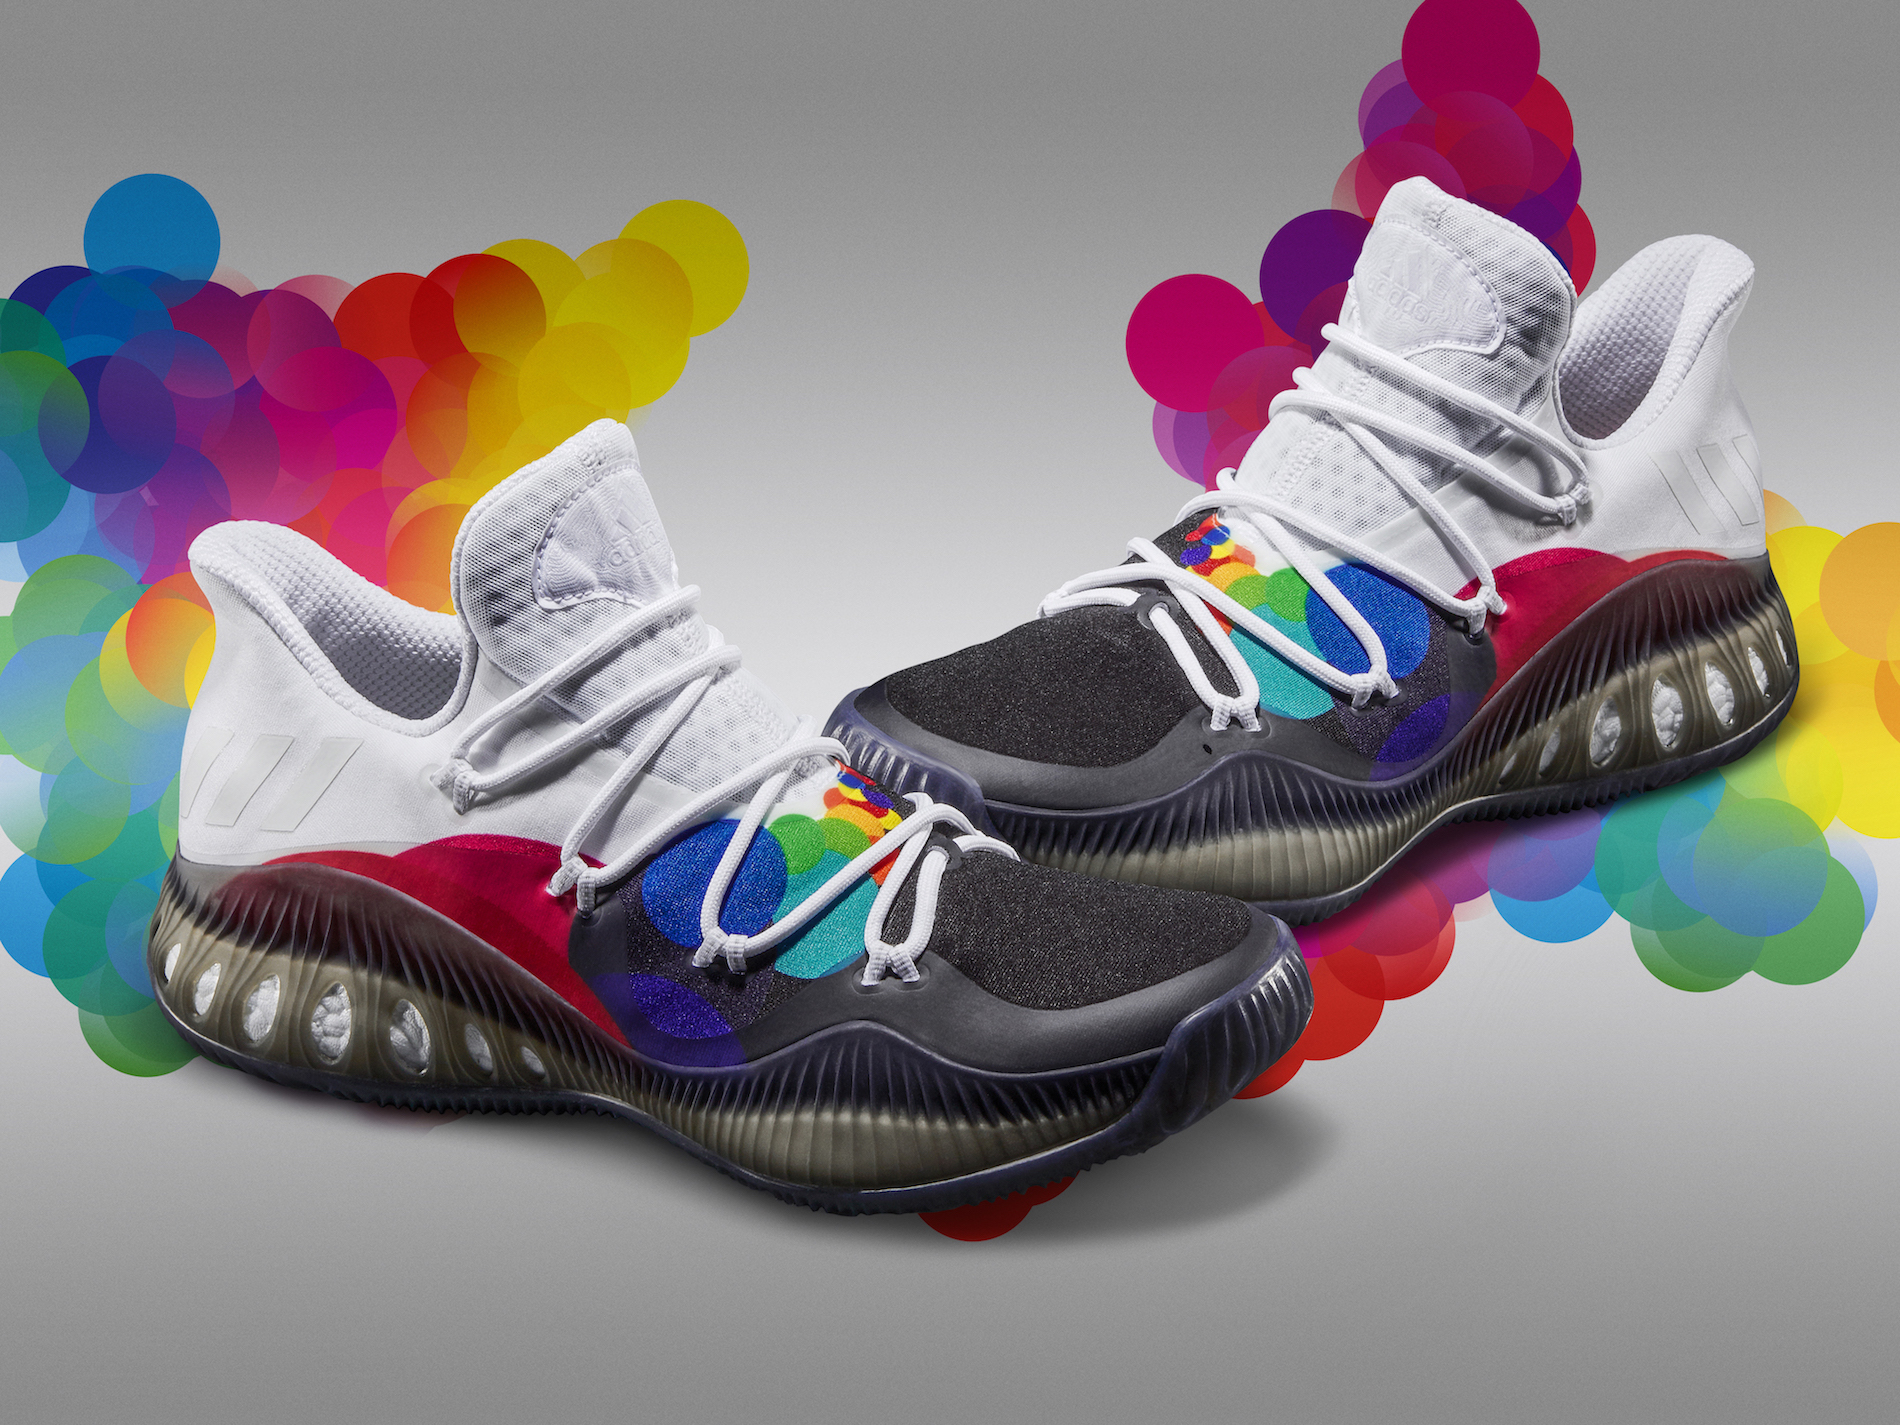 adidas pride pack crazy explosive low 1